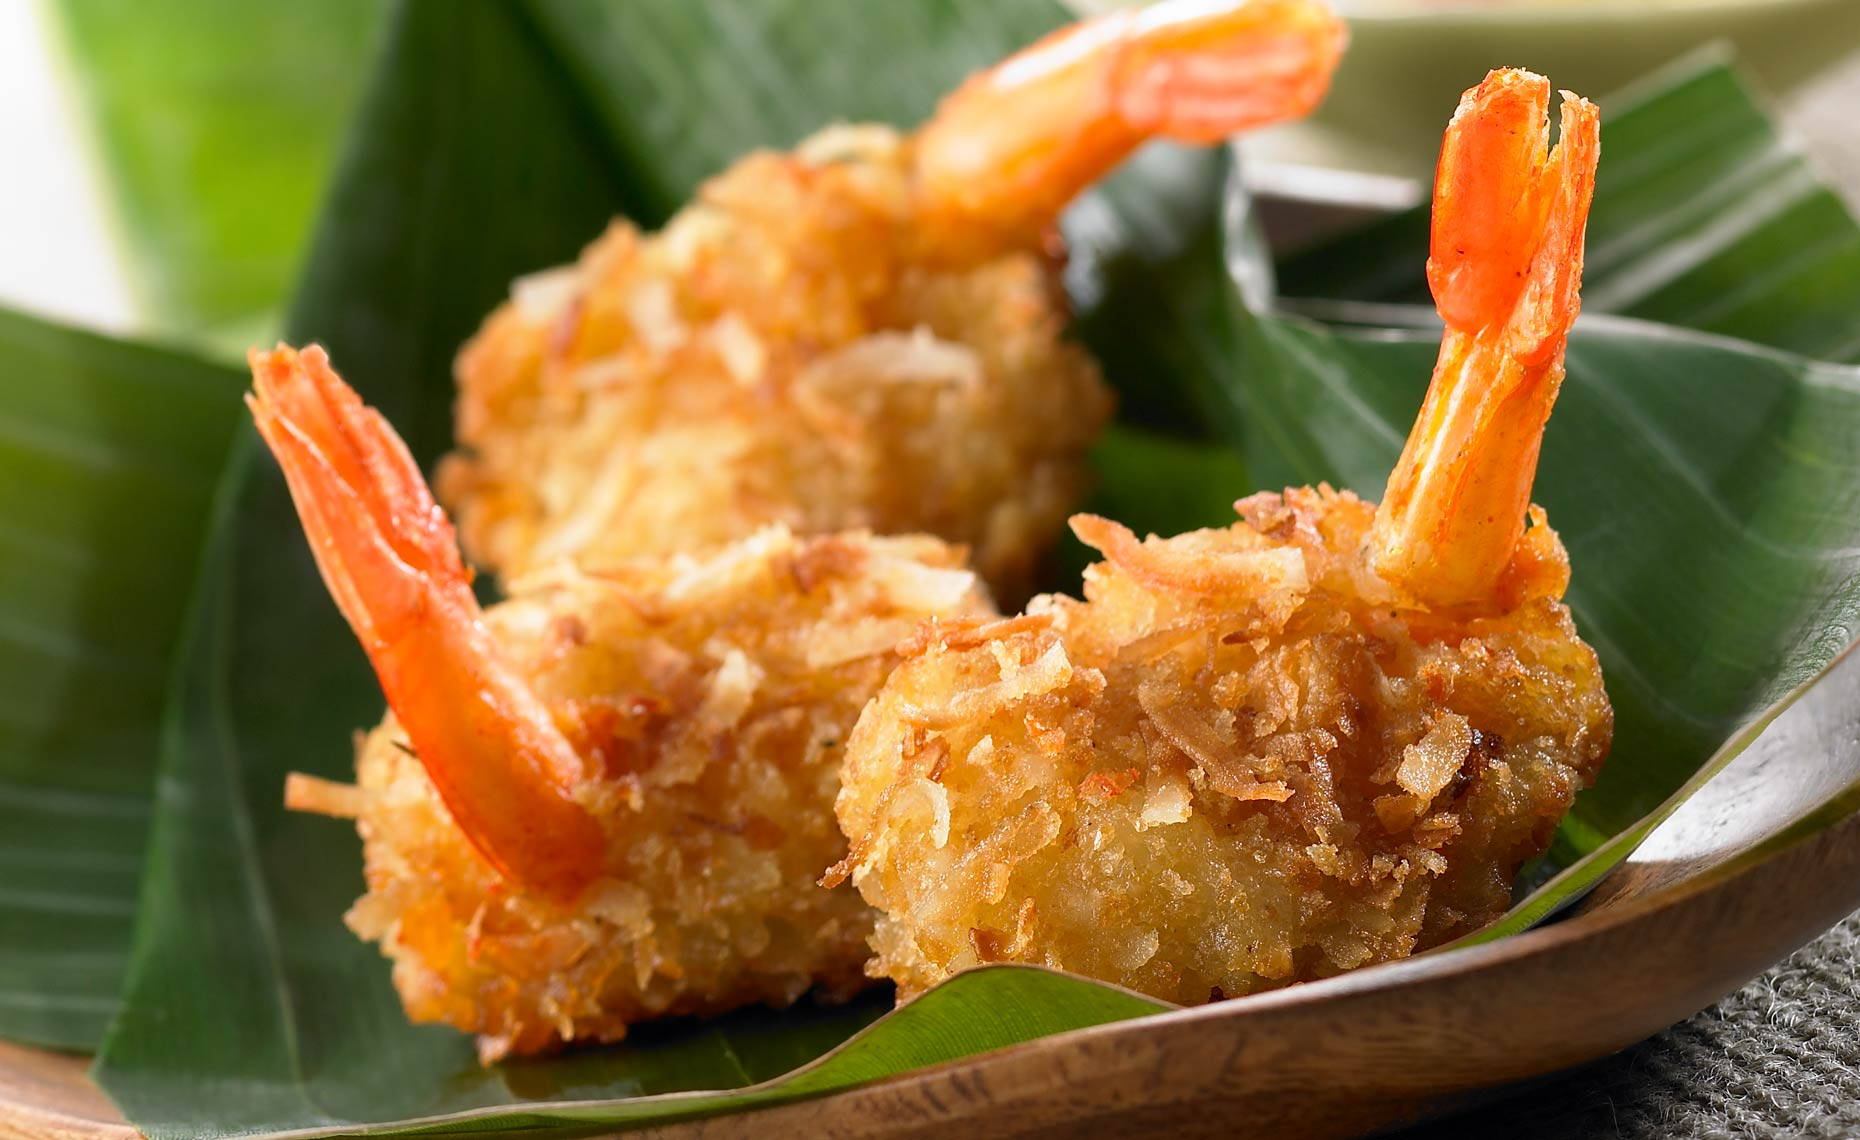 appetizers-fruits-vegetables-photographers-shrimp-coconut-14